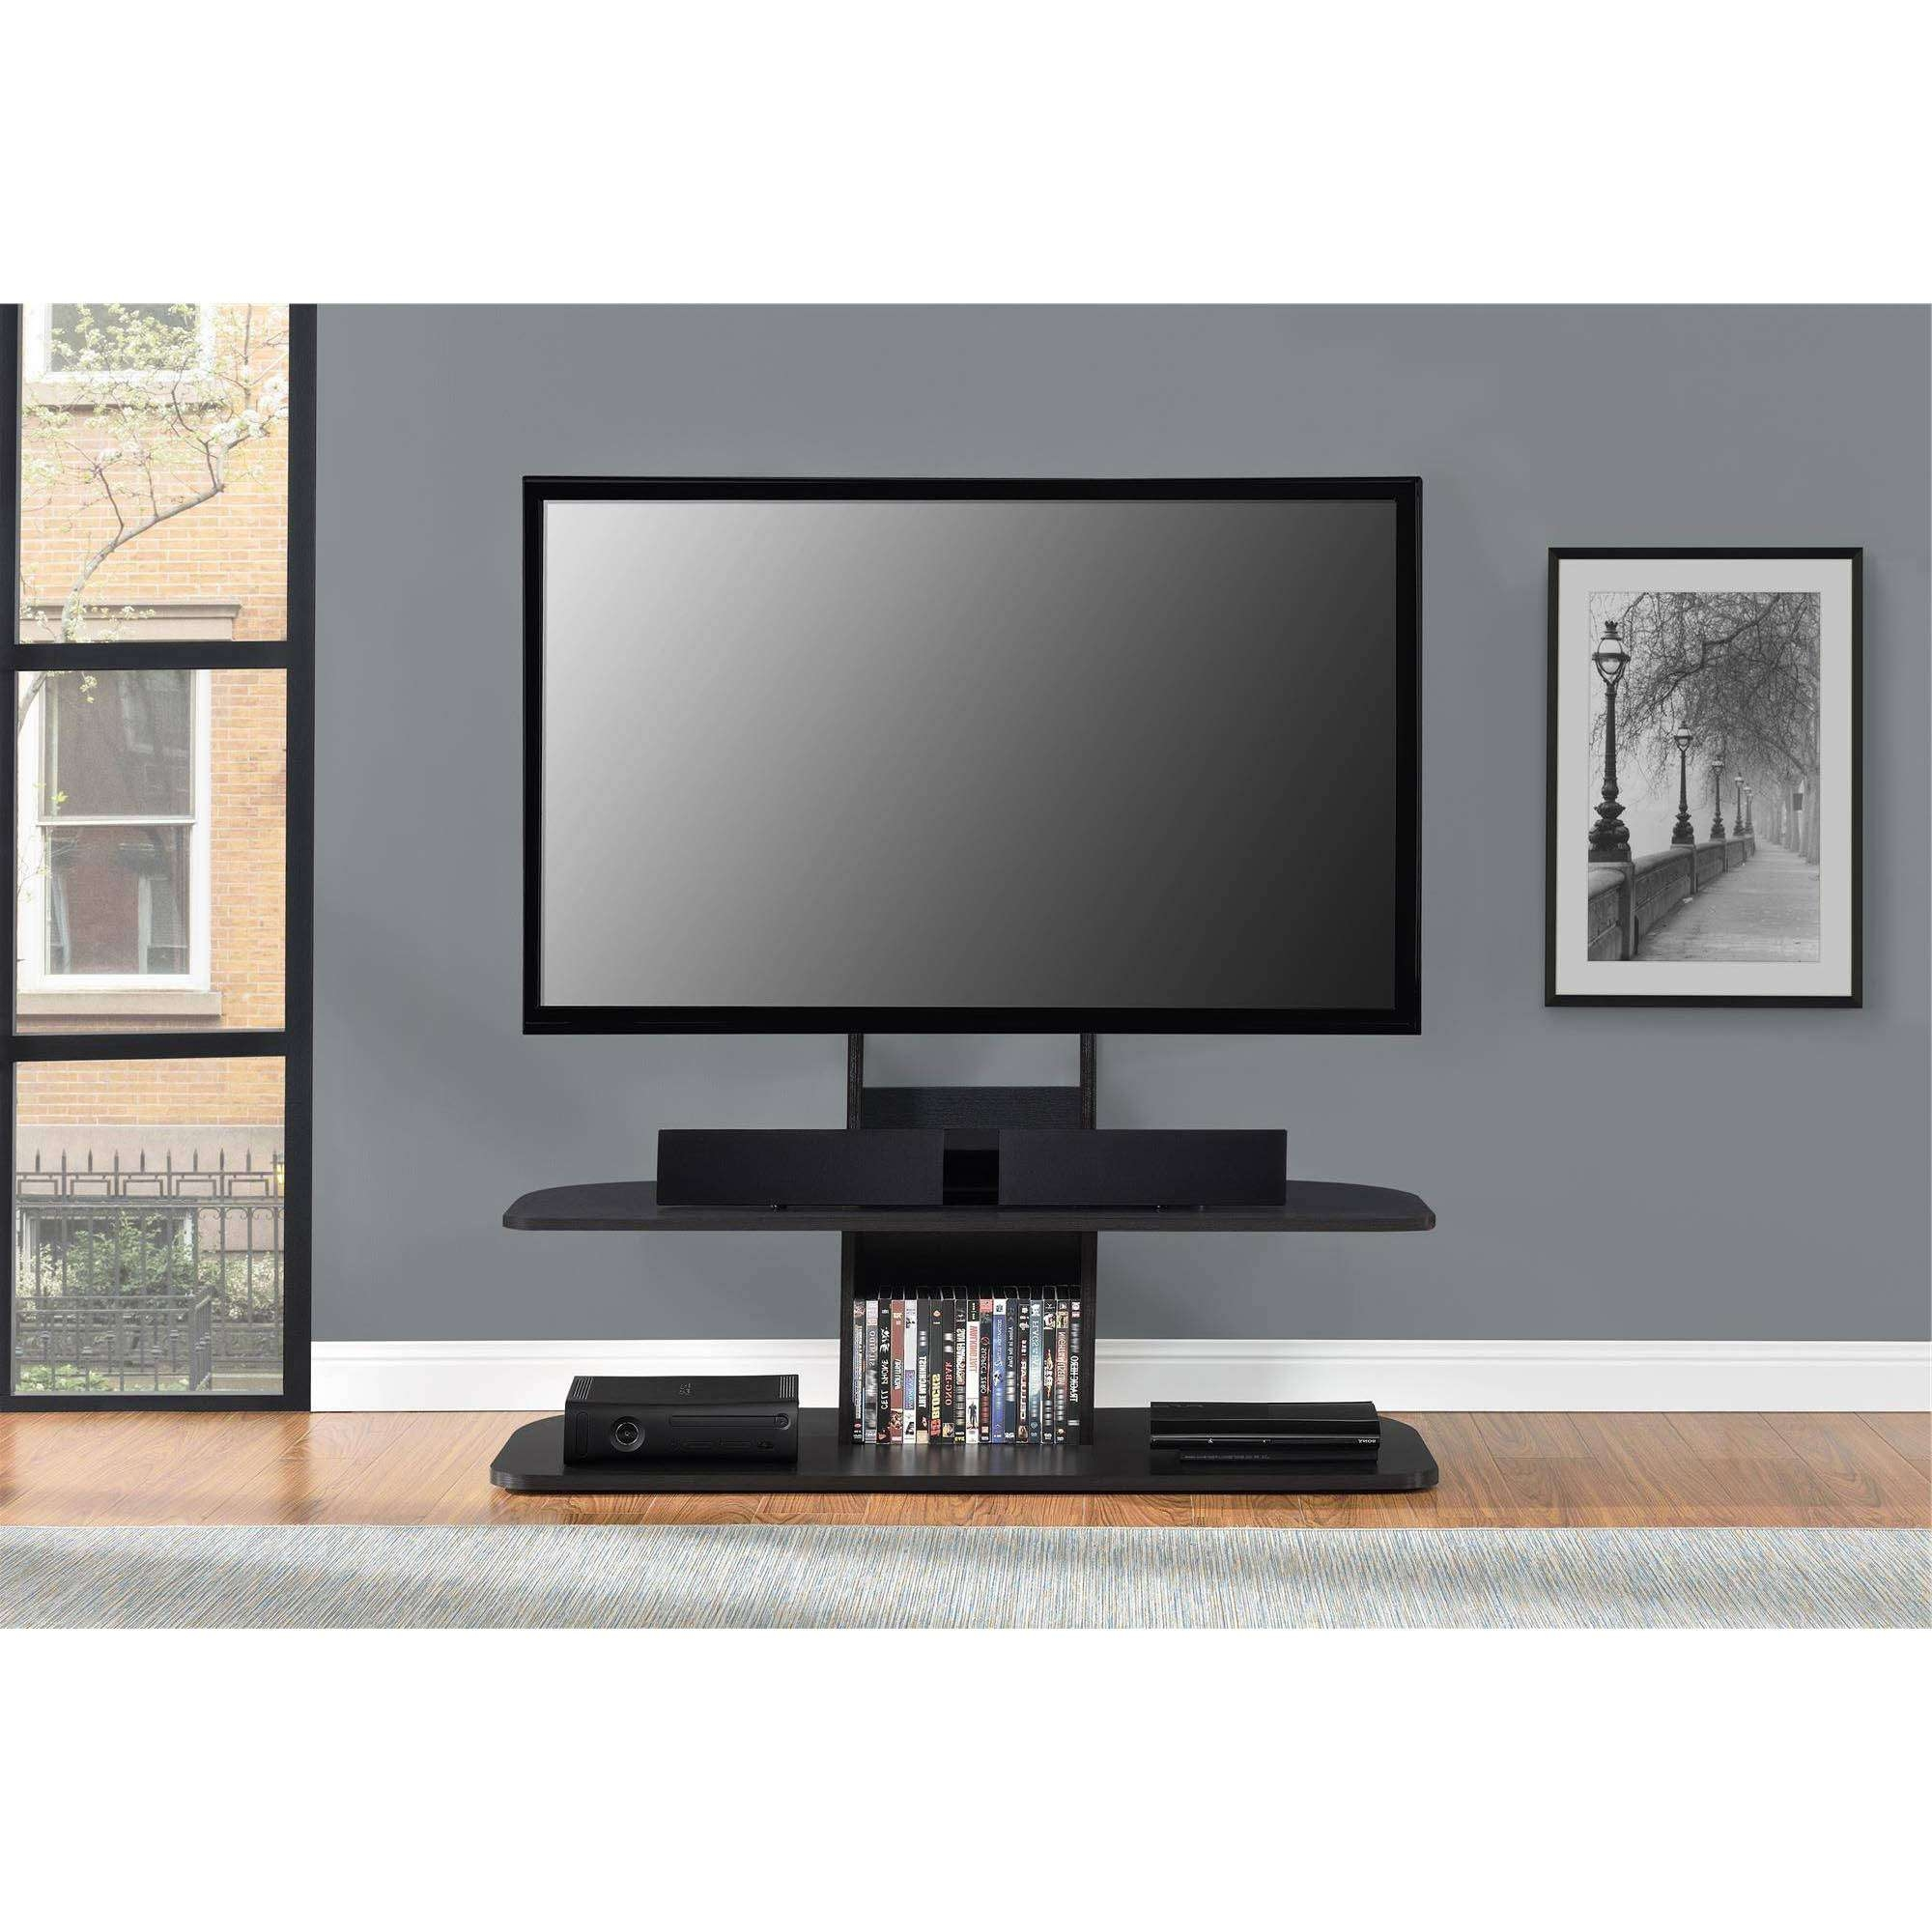 Tv Stand : Stirring Corner Tvand Mount Photo Design With Wood Wall In Corner Tv Stands 40 Inch (View 20 of 20)